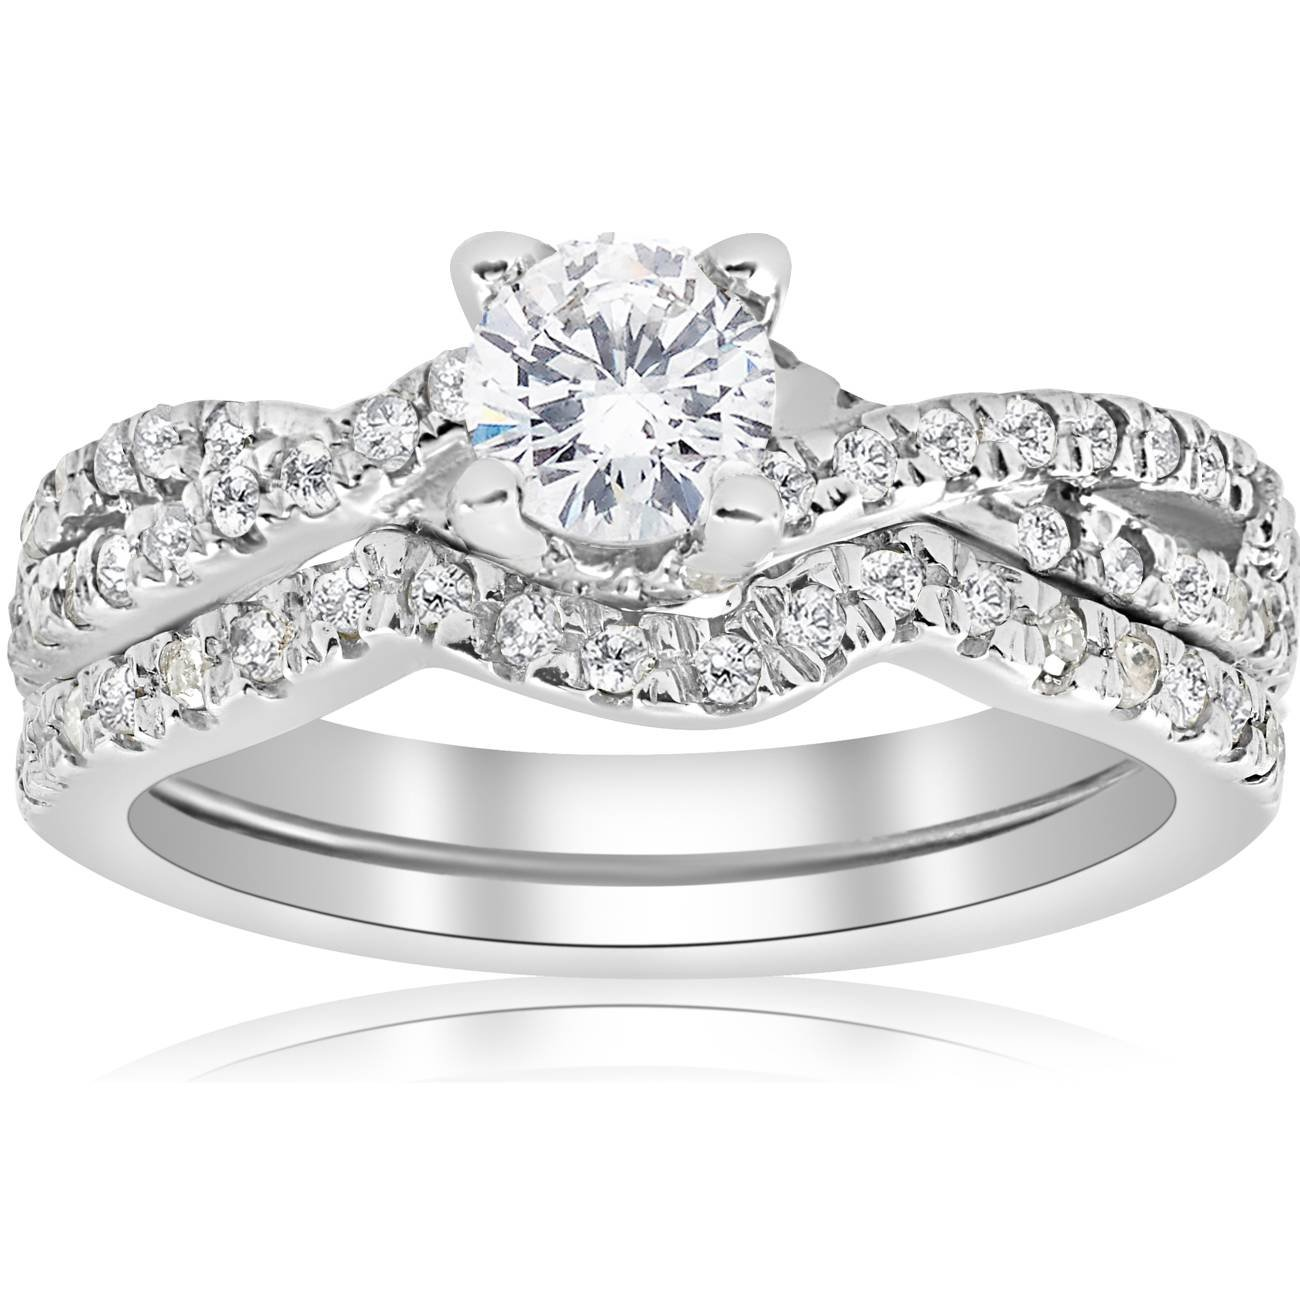 1ct Infinity Diamond Engagement Wedding Ring Set 14K White Gold - Size 8